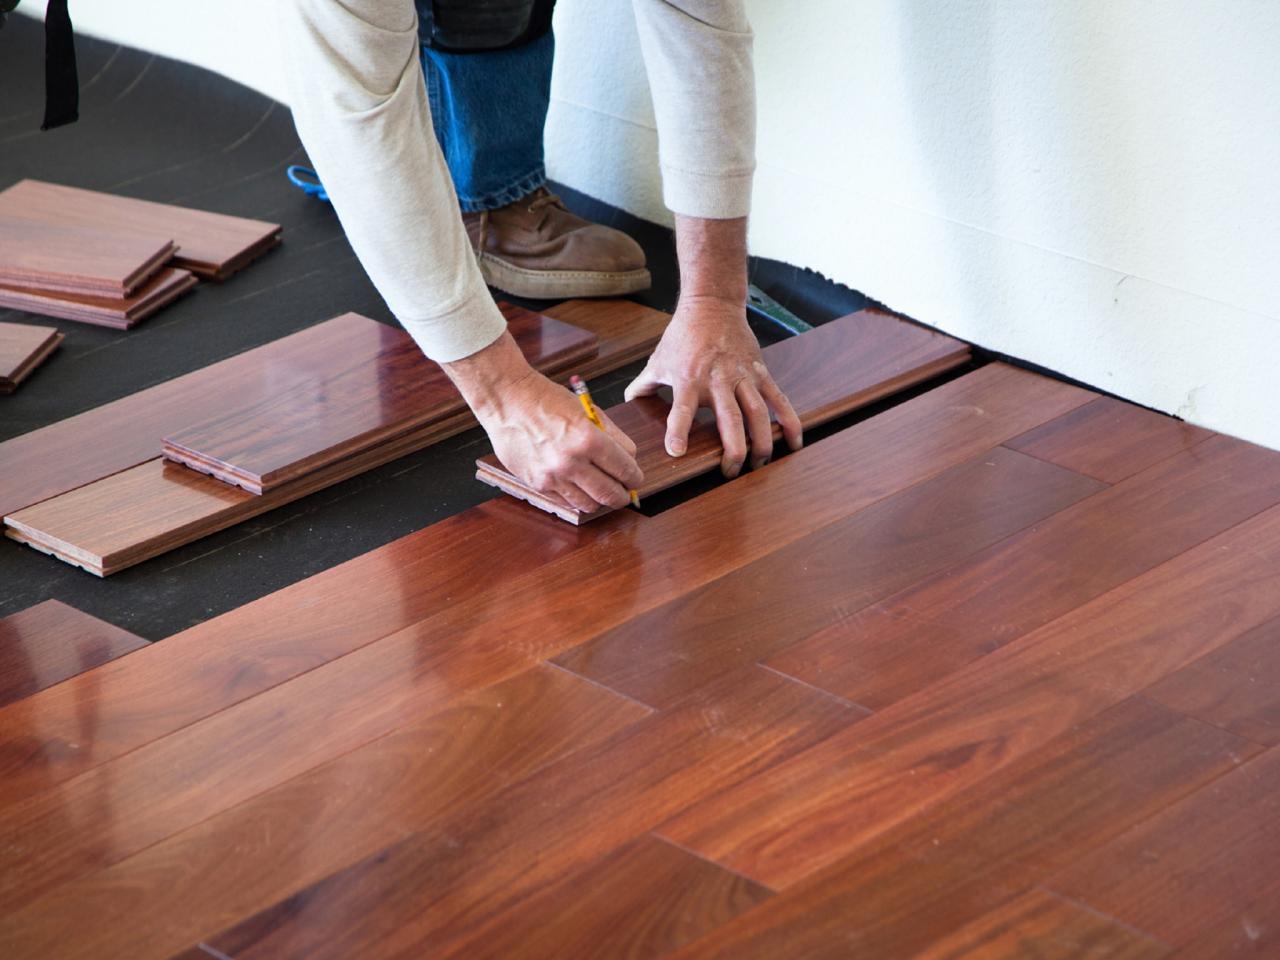 What to Look for When Choosing a Flooring Installer